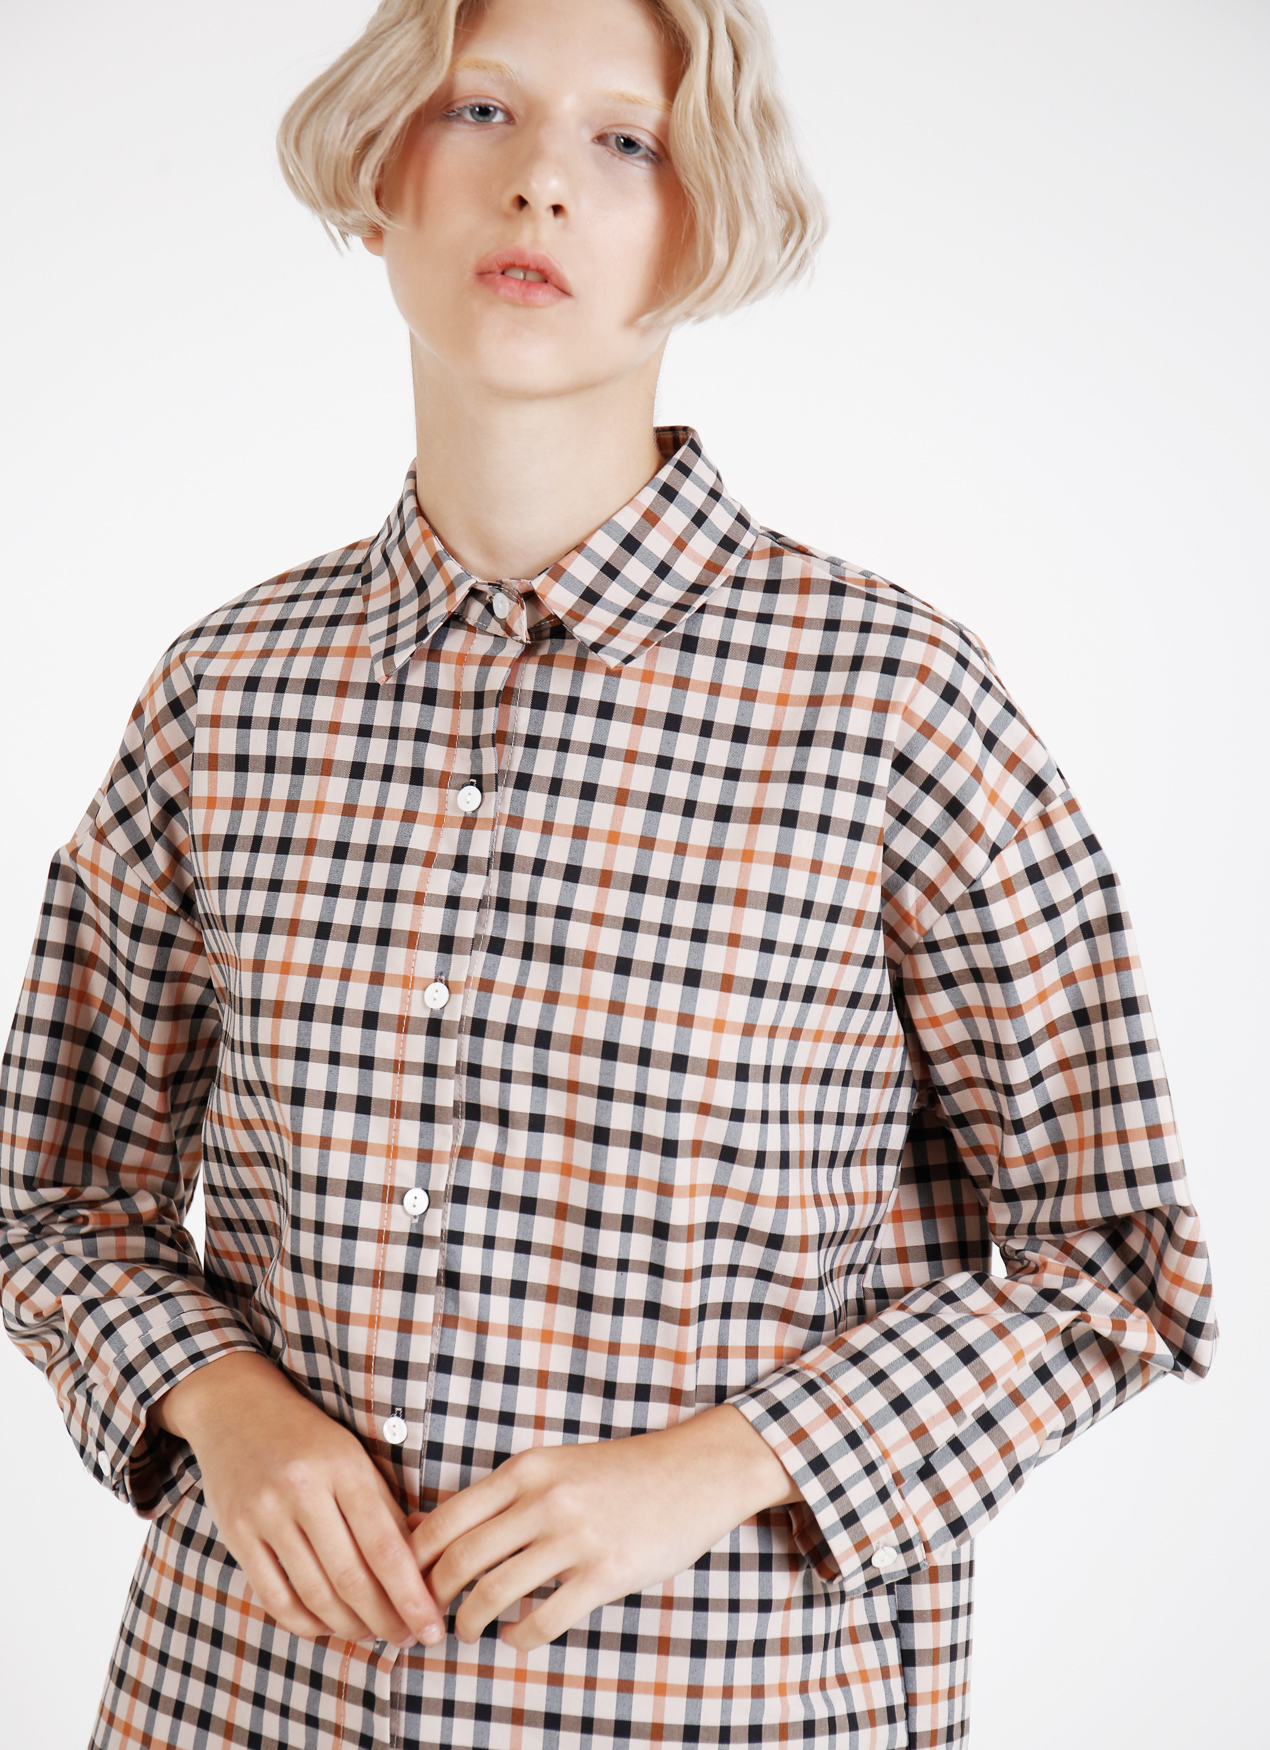 BOWN Rachel Top - Plaid Beige